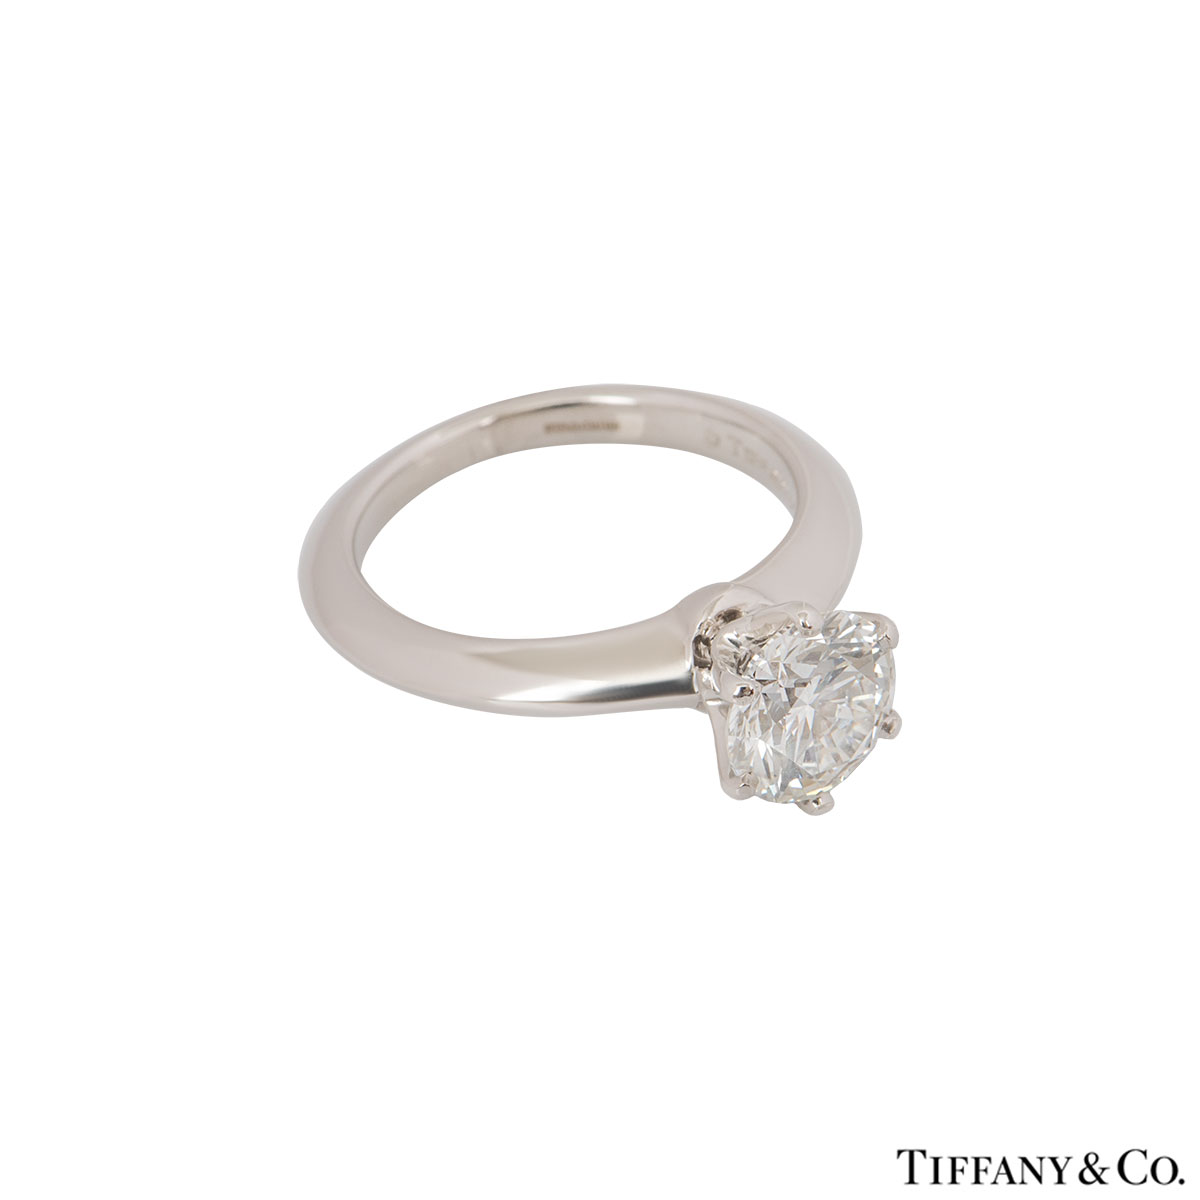 Tiffany & Co. Platinum Diamond Setting Ring 1.21ct H/VS2